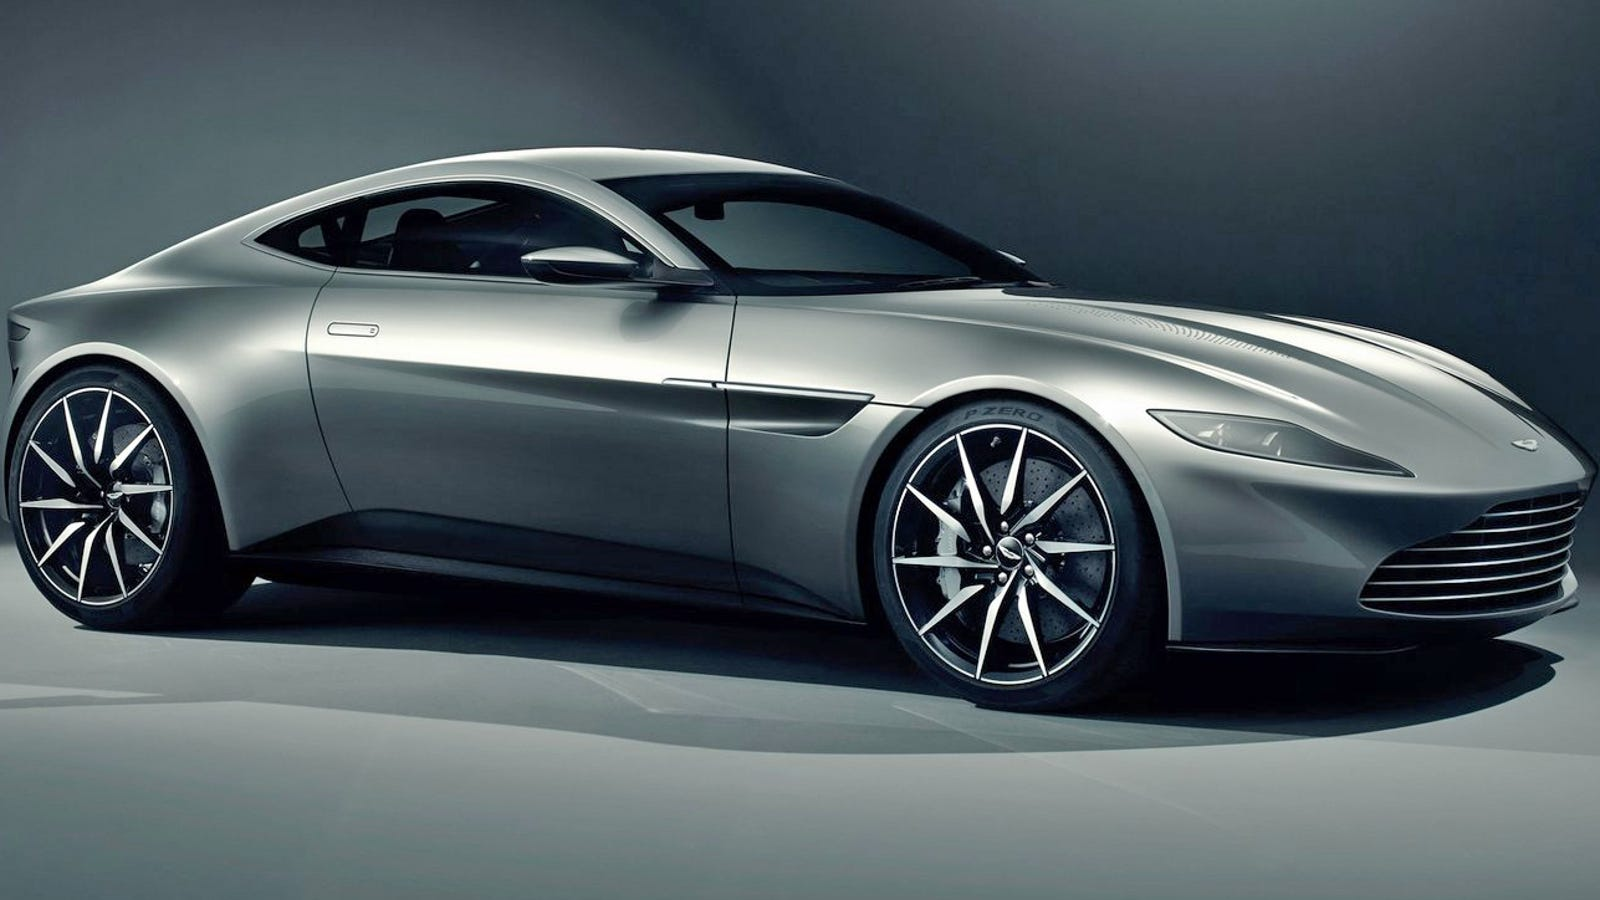 aston martin is finally going to build james bond's db10 as the